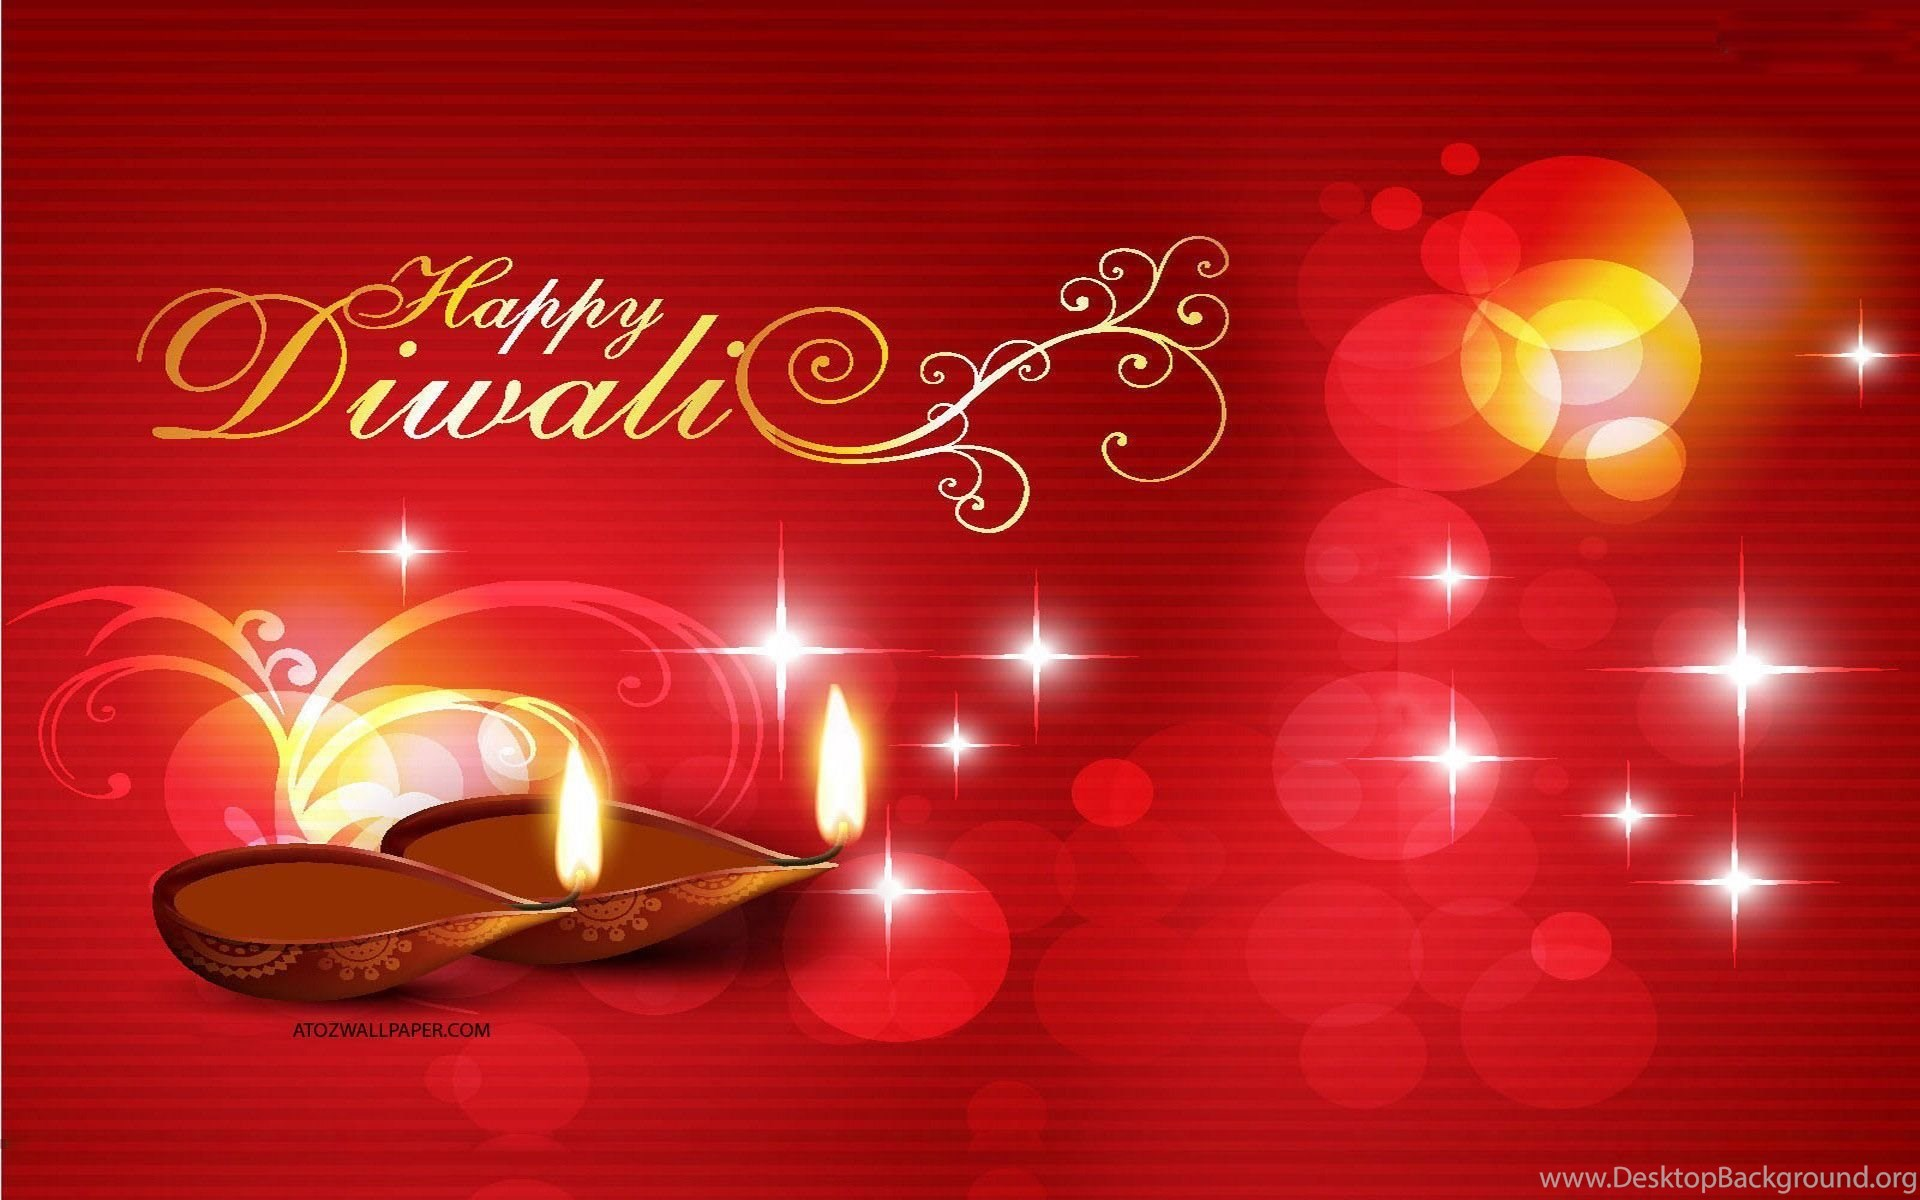 1080p HD Happy Diwali HD Wallpapers Free AtozWallpapers